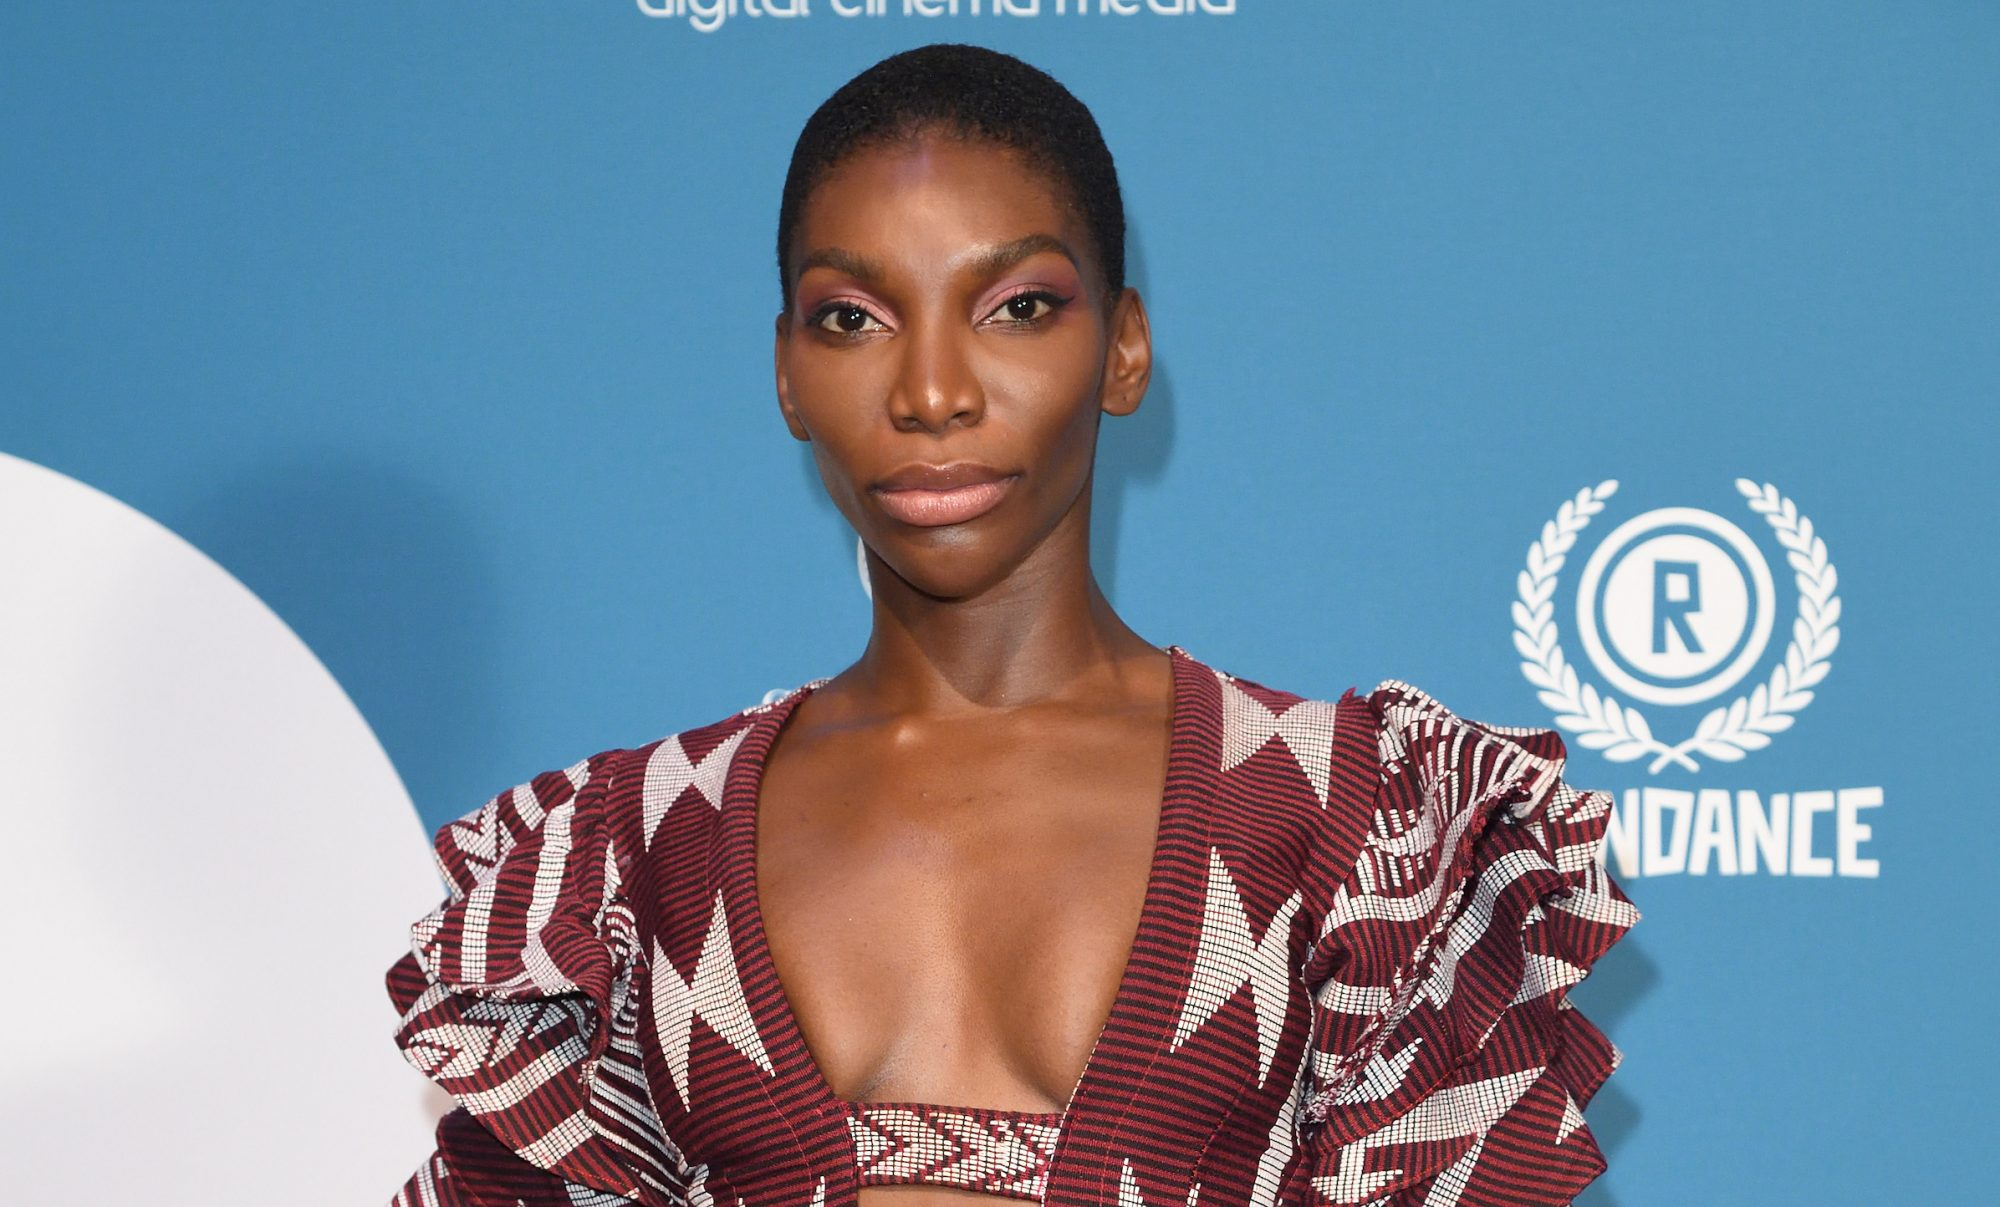 I May Destroy You show, Michaela Coel